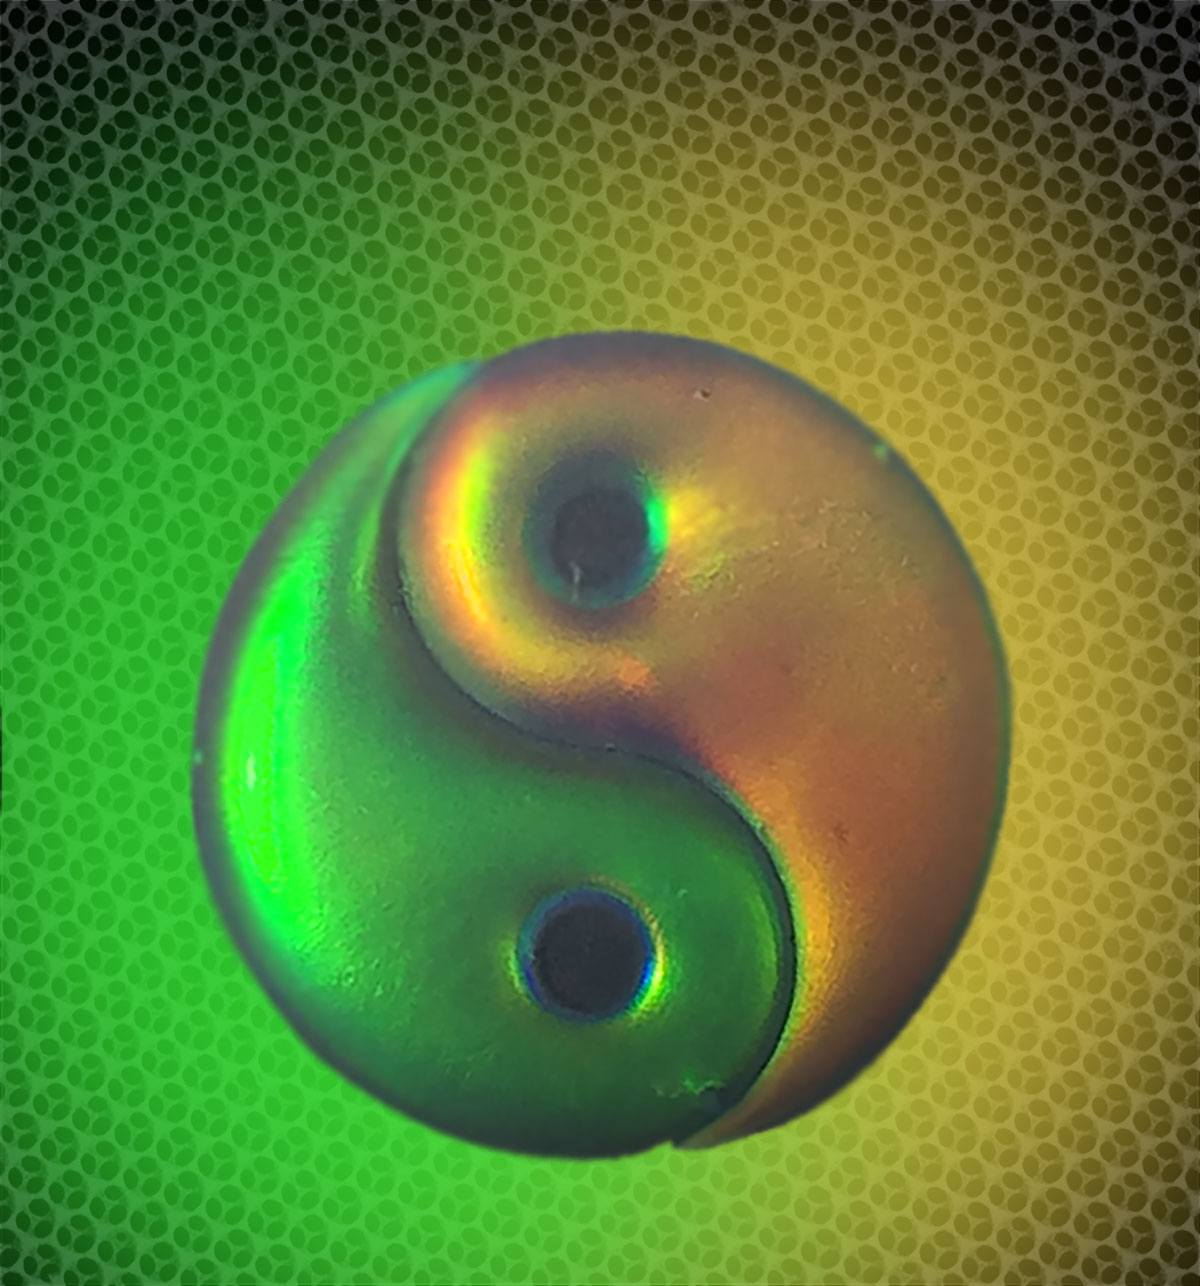 Chinese Taiji Hydrogel With Green Background. Credit: Yuanjin Zhao